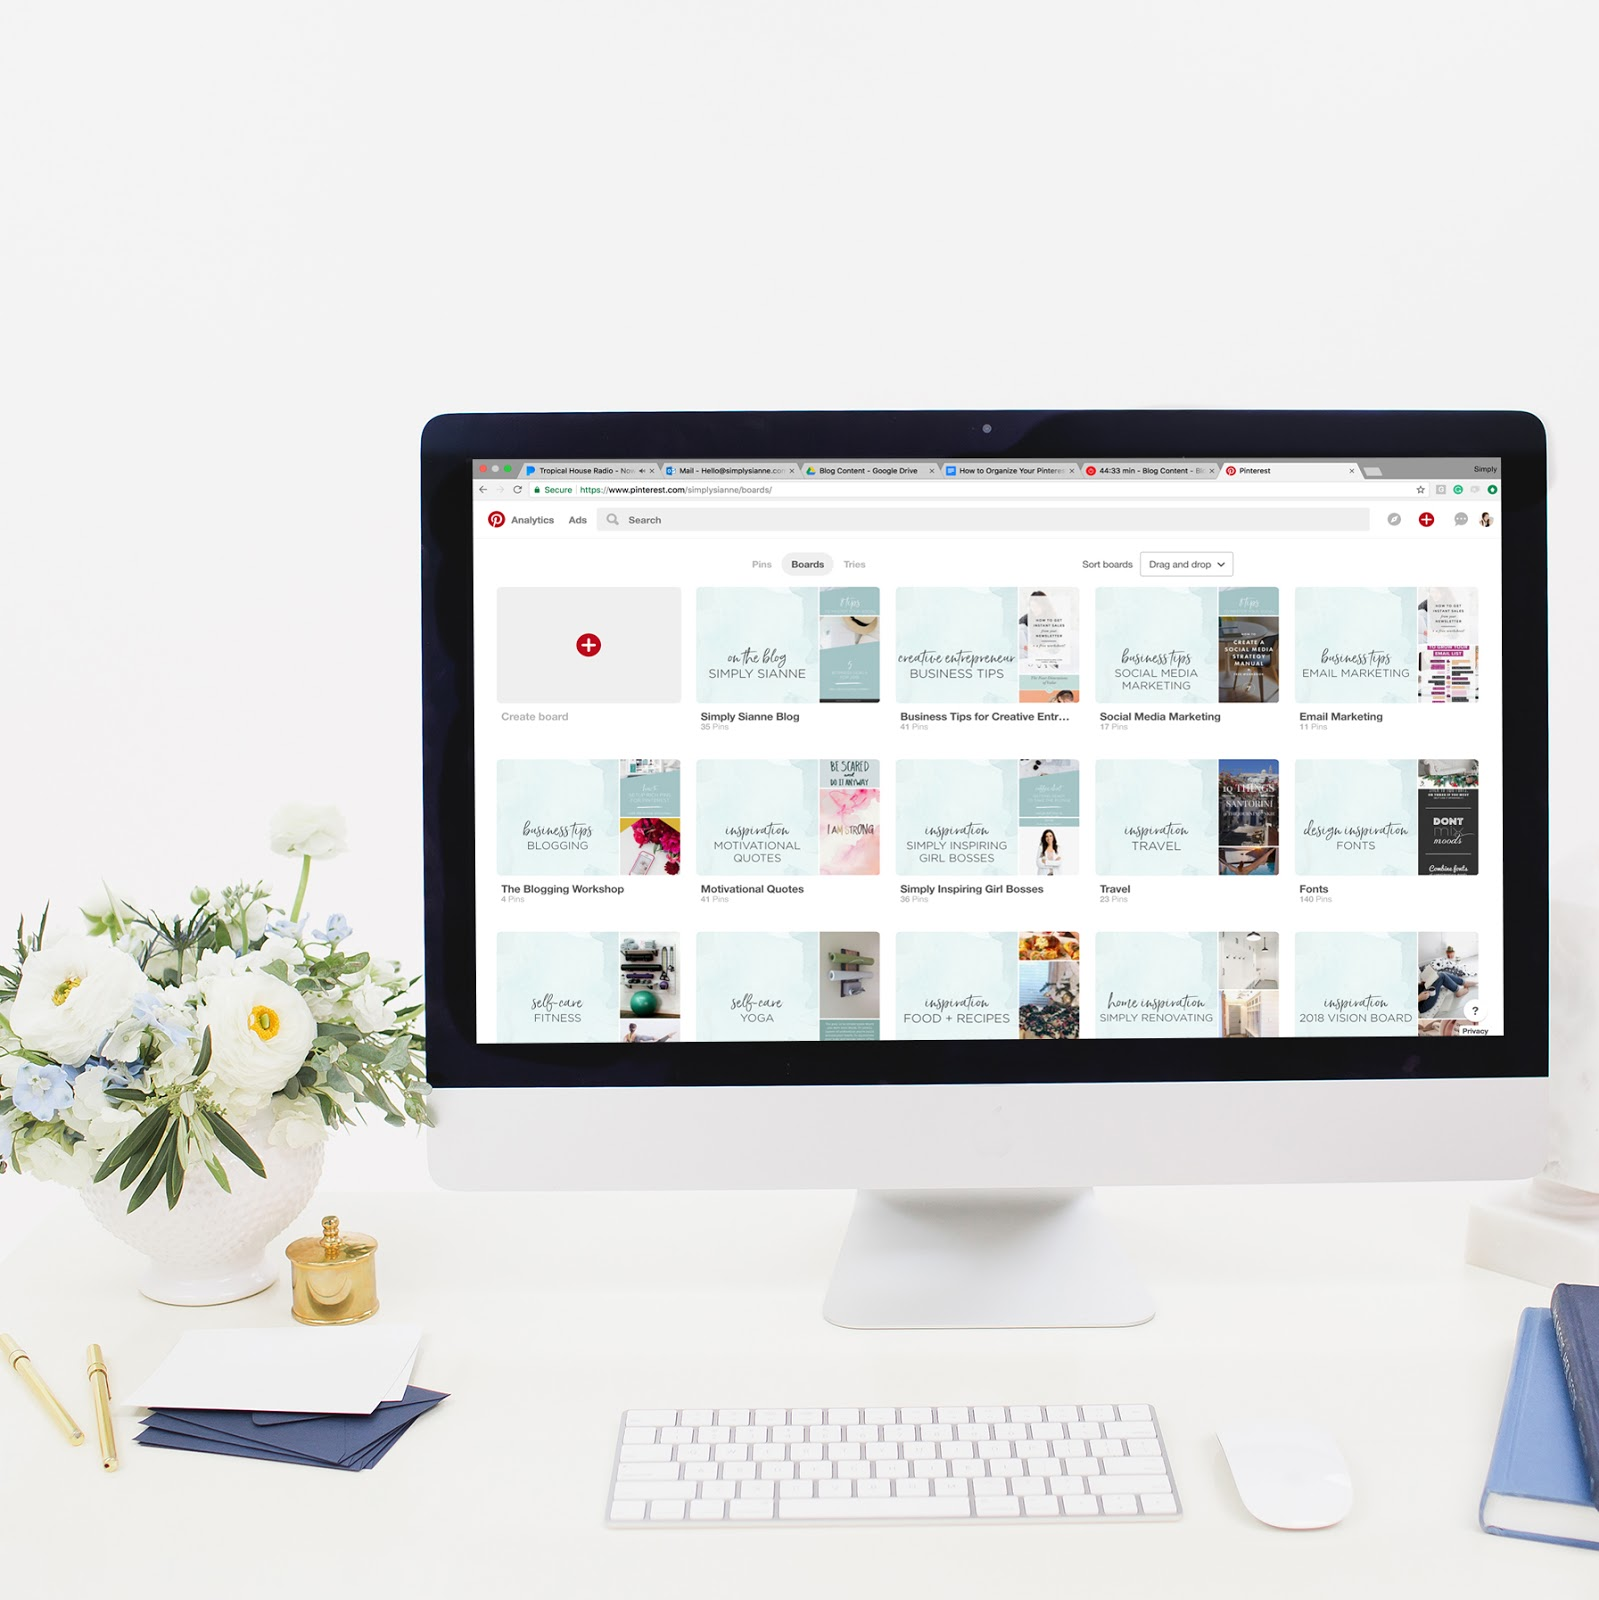 How to Organize Your Pinterest Account with Sections